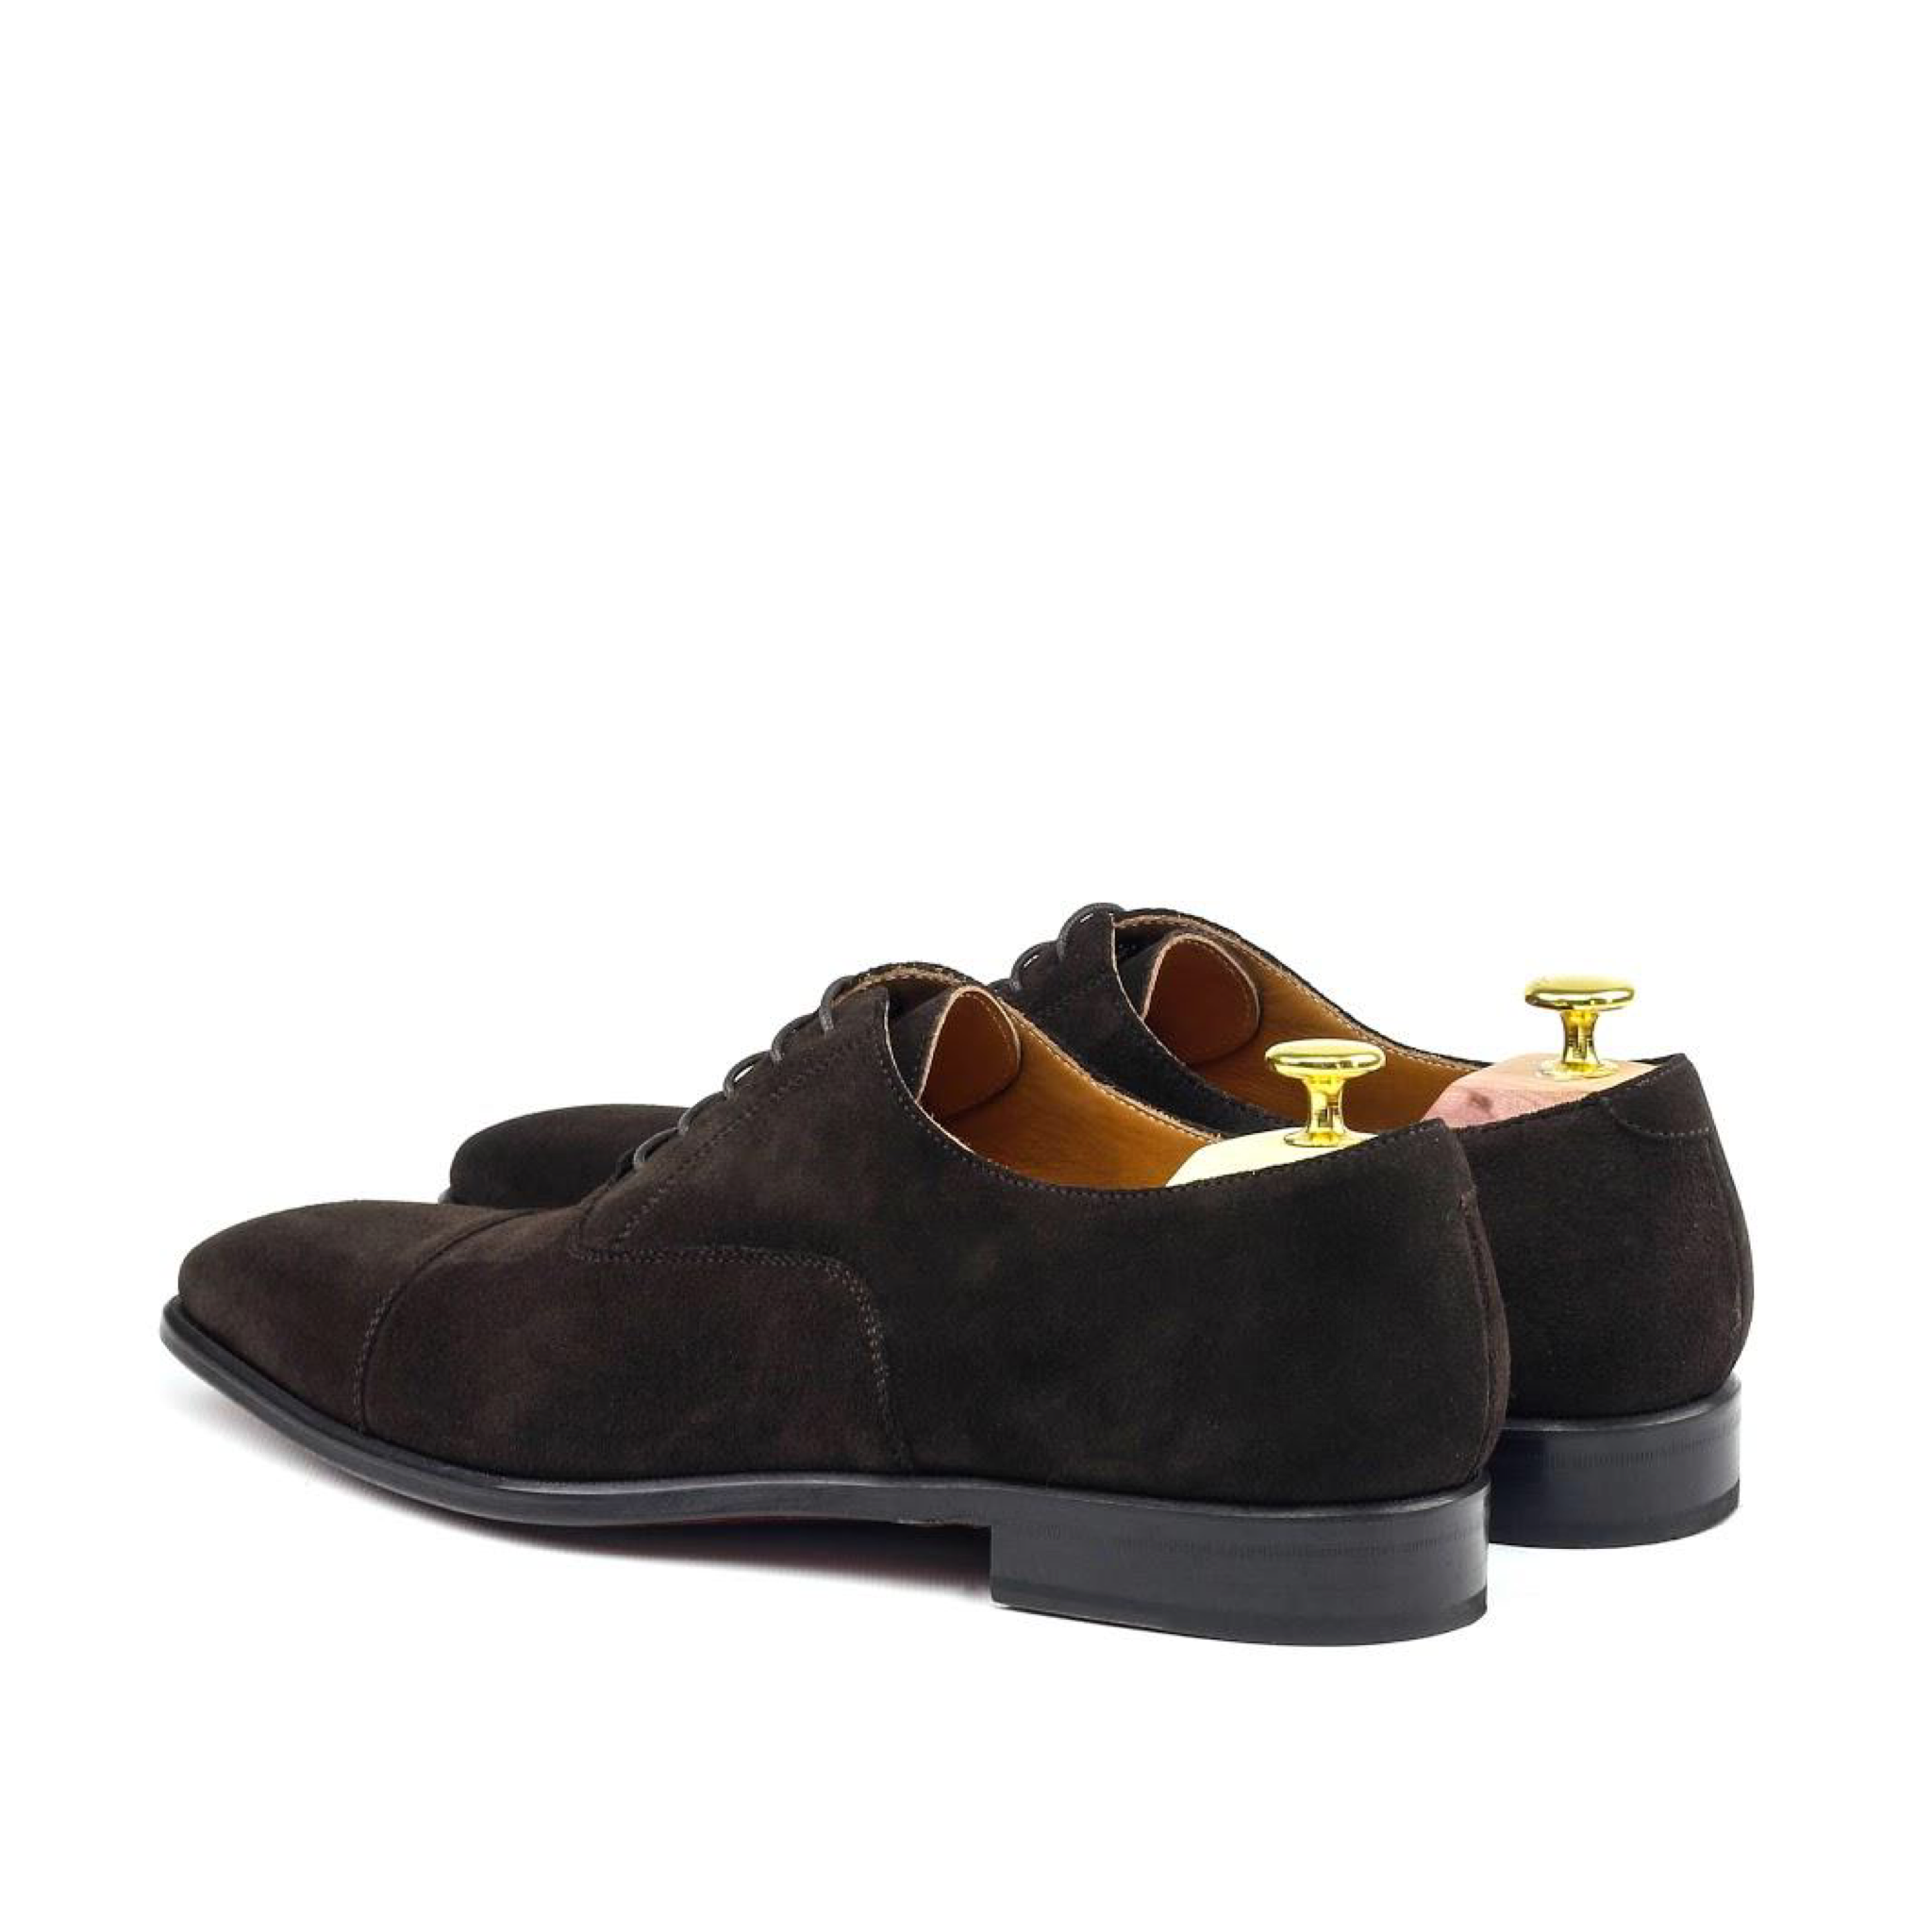 MANOR OF LONDON 'The Oxford' Brown Suede Shoe Luxury Custom Initials Monogrammed Back Side View